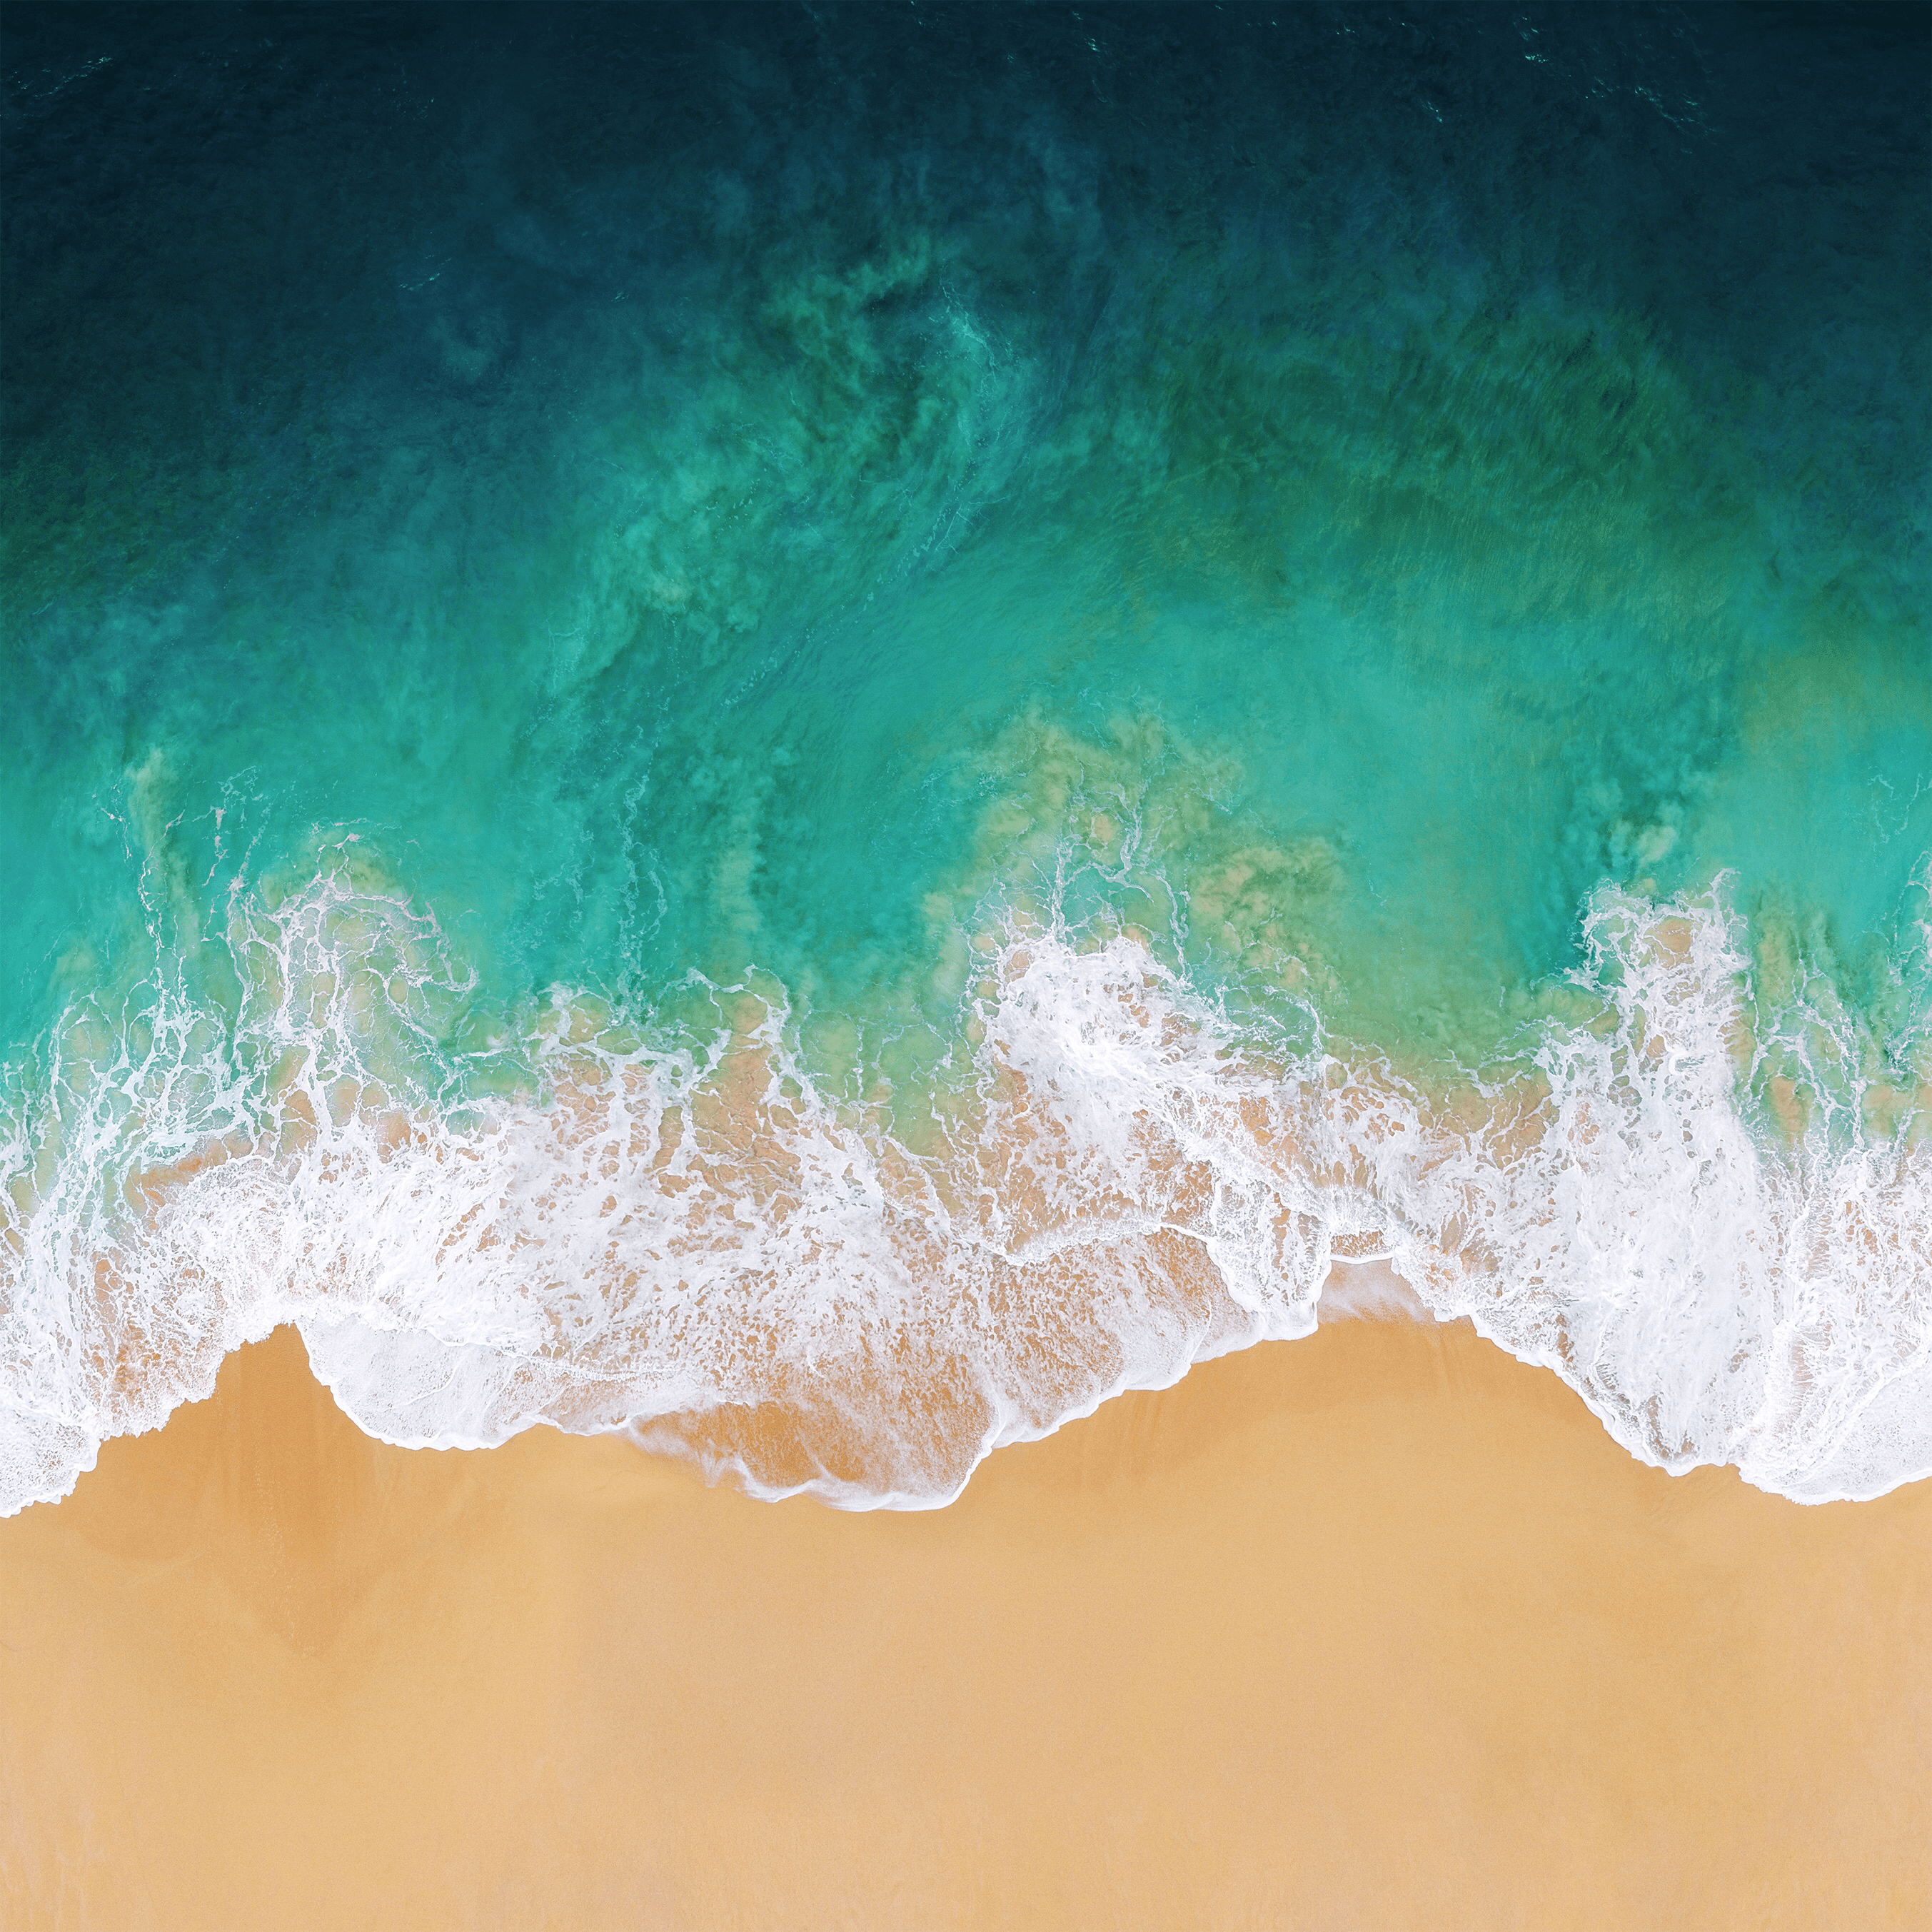 Download the Real iOS 11 Wallpapers for iPhone